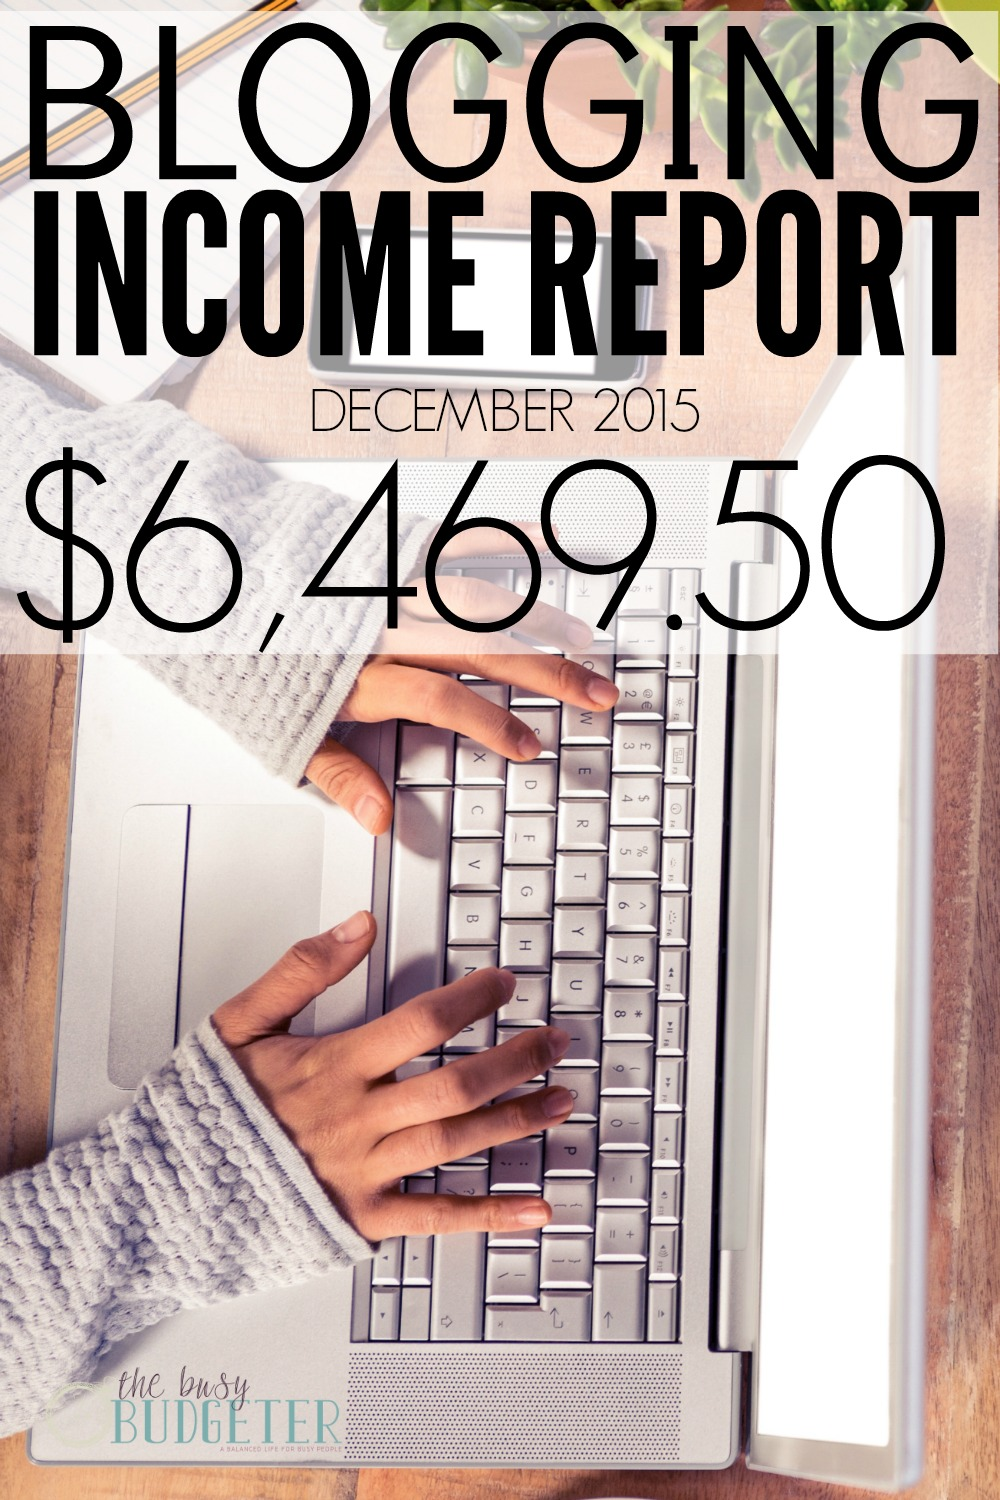 Blogging Income Report- December 2015 - $6,469.50 This is so motivating! I've been blogging for a while but never even thought about making money from it. Love that she breaks it down and explains where the money comes form and how she did it. Amazing! I'm going to have to go find more blog income reports now!